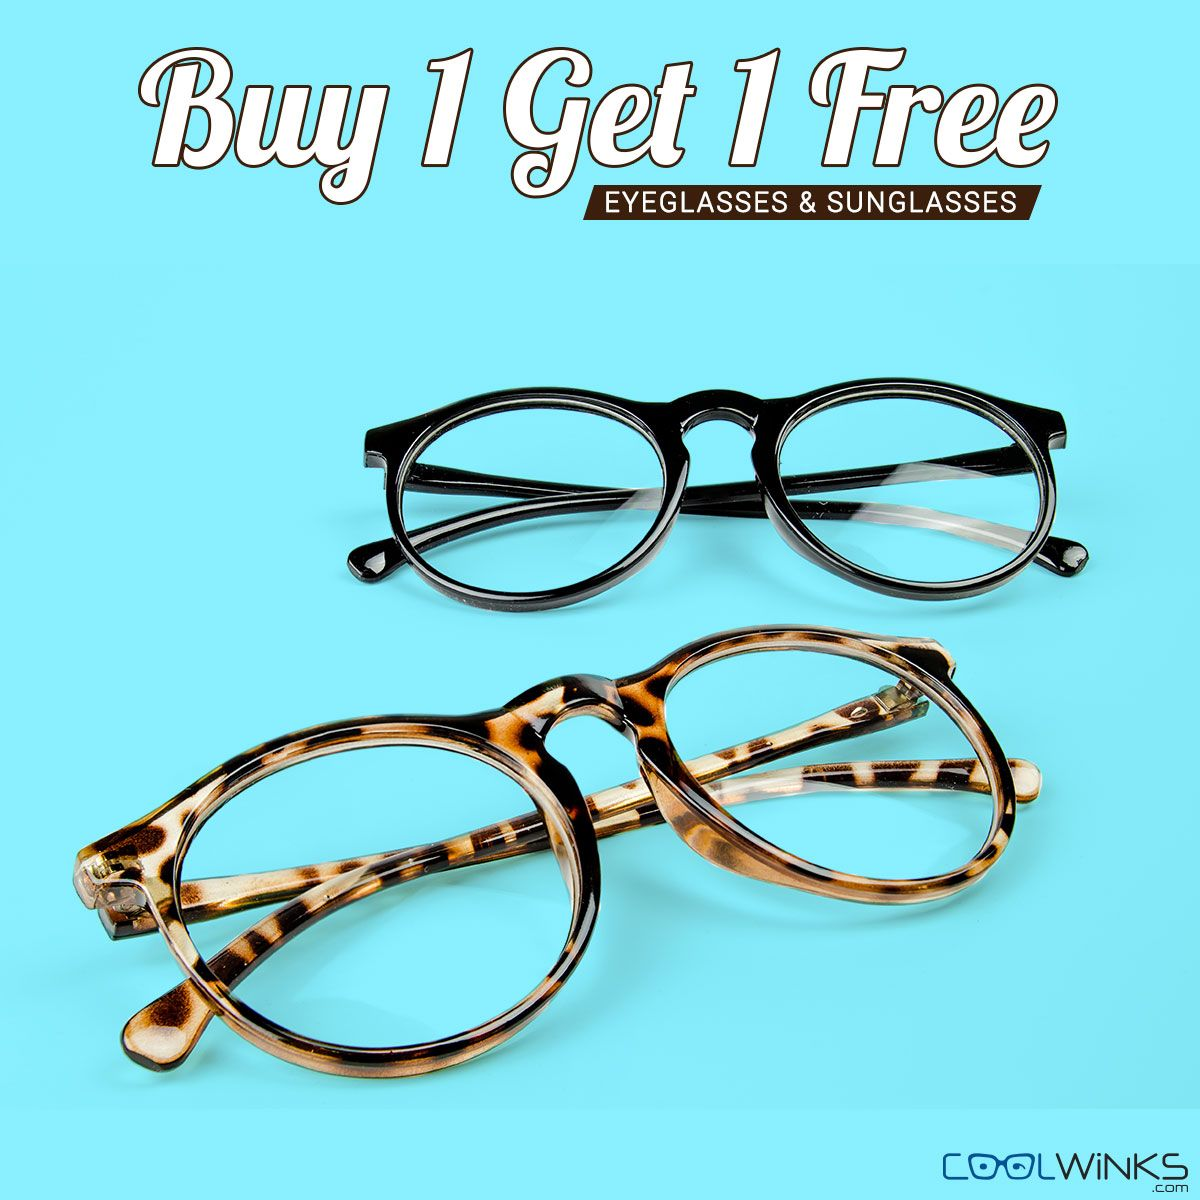 Price cut limited time offer shop now for the best selection hurry - Buy One Get One Offer Shop Any Pair Of Eyeglasses Coolwinks Get Another